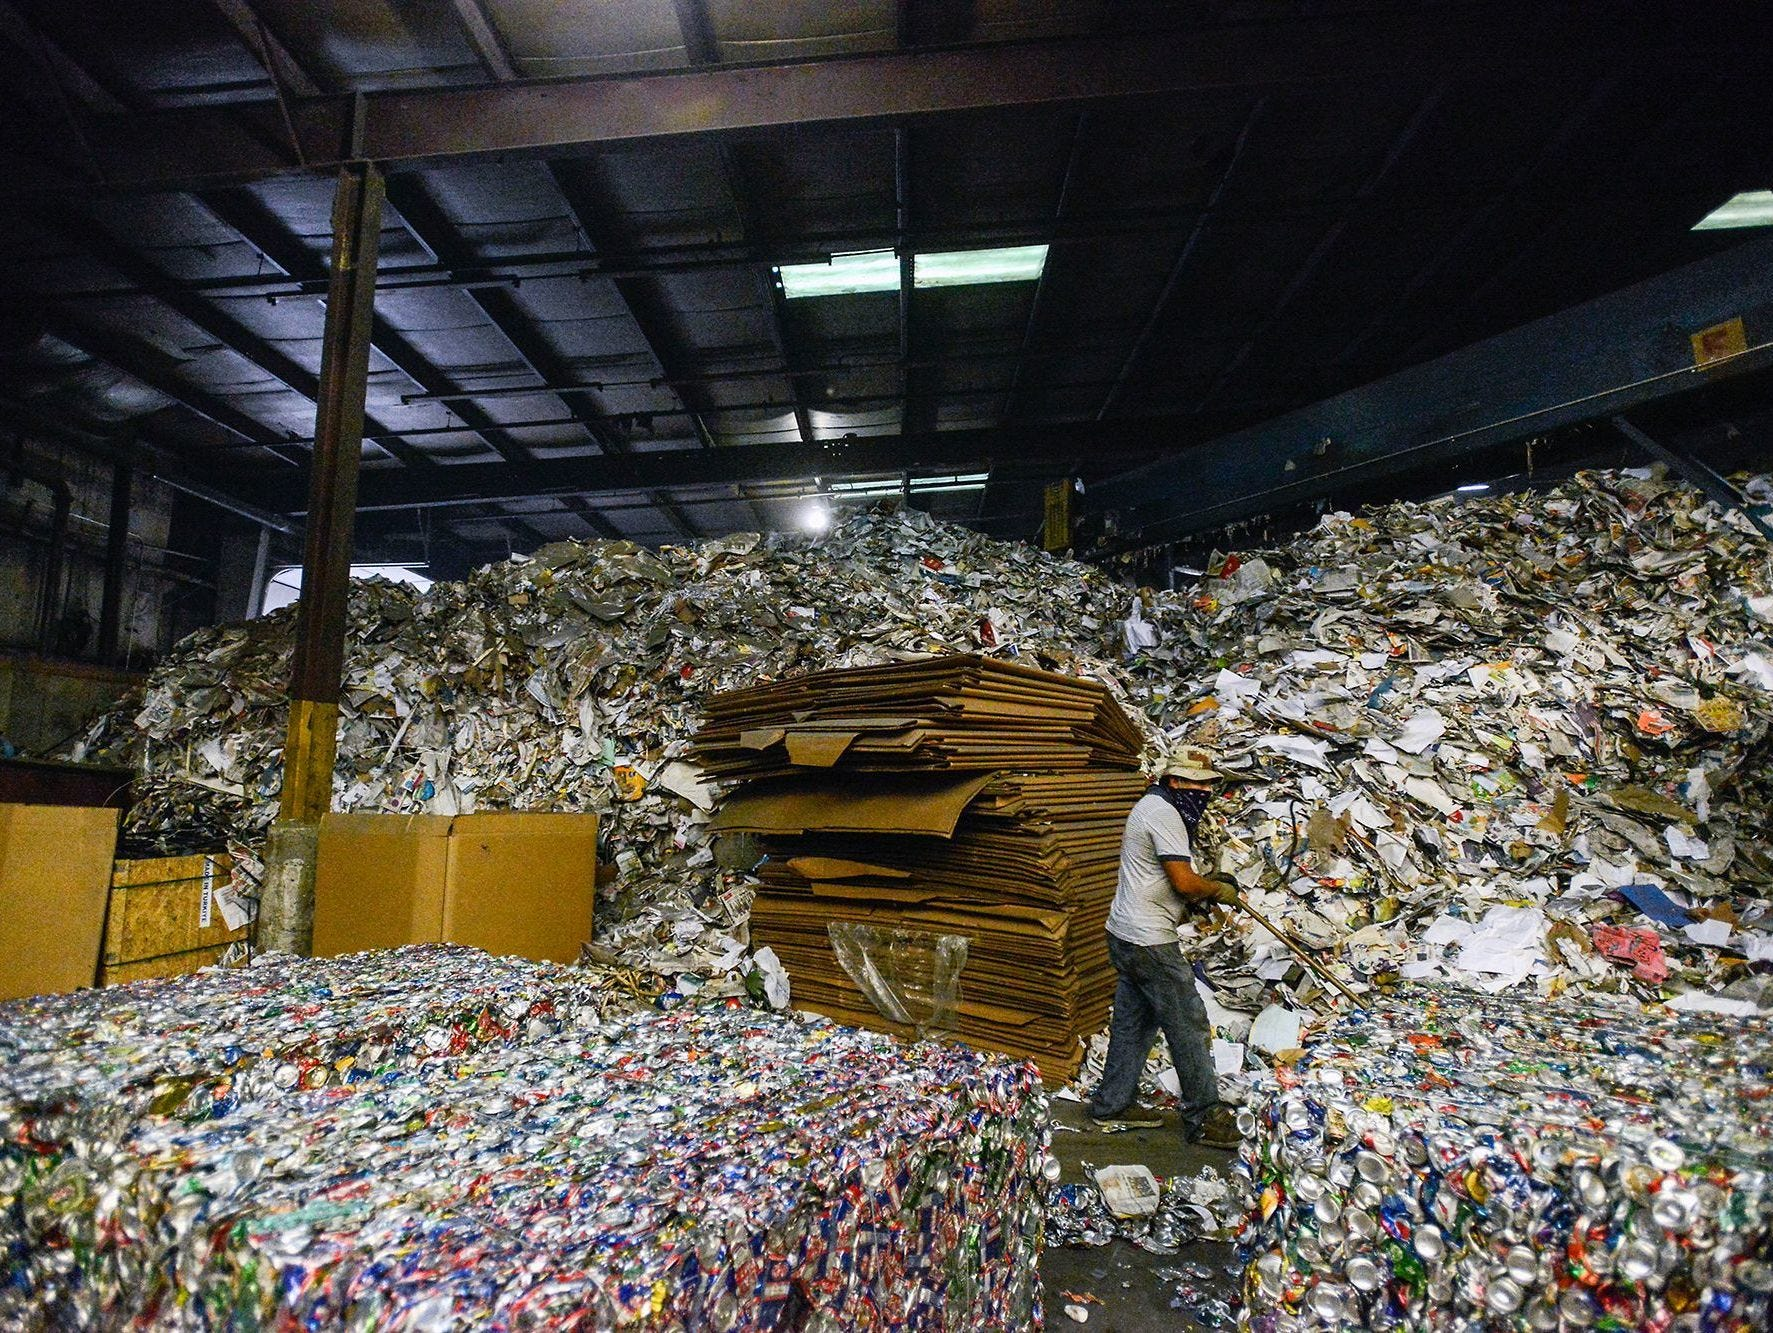 In this file photo, Jose Ramos pushes crushed cans off the floor inside the Curbside Management recycling center in Woodfin. Curbside Management, or Curbie, handles recycling for the city of Asheville and its 30,000 customers, as well as for Fletcher, Woodfin and Weaverville.